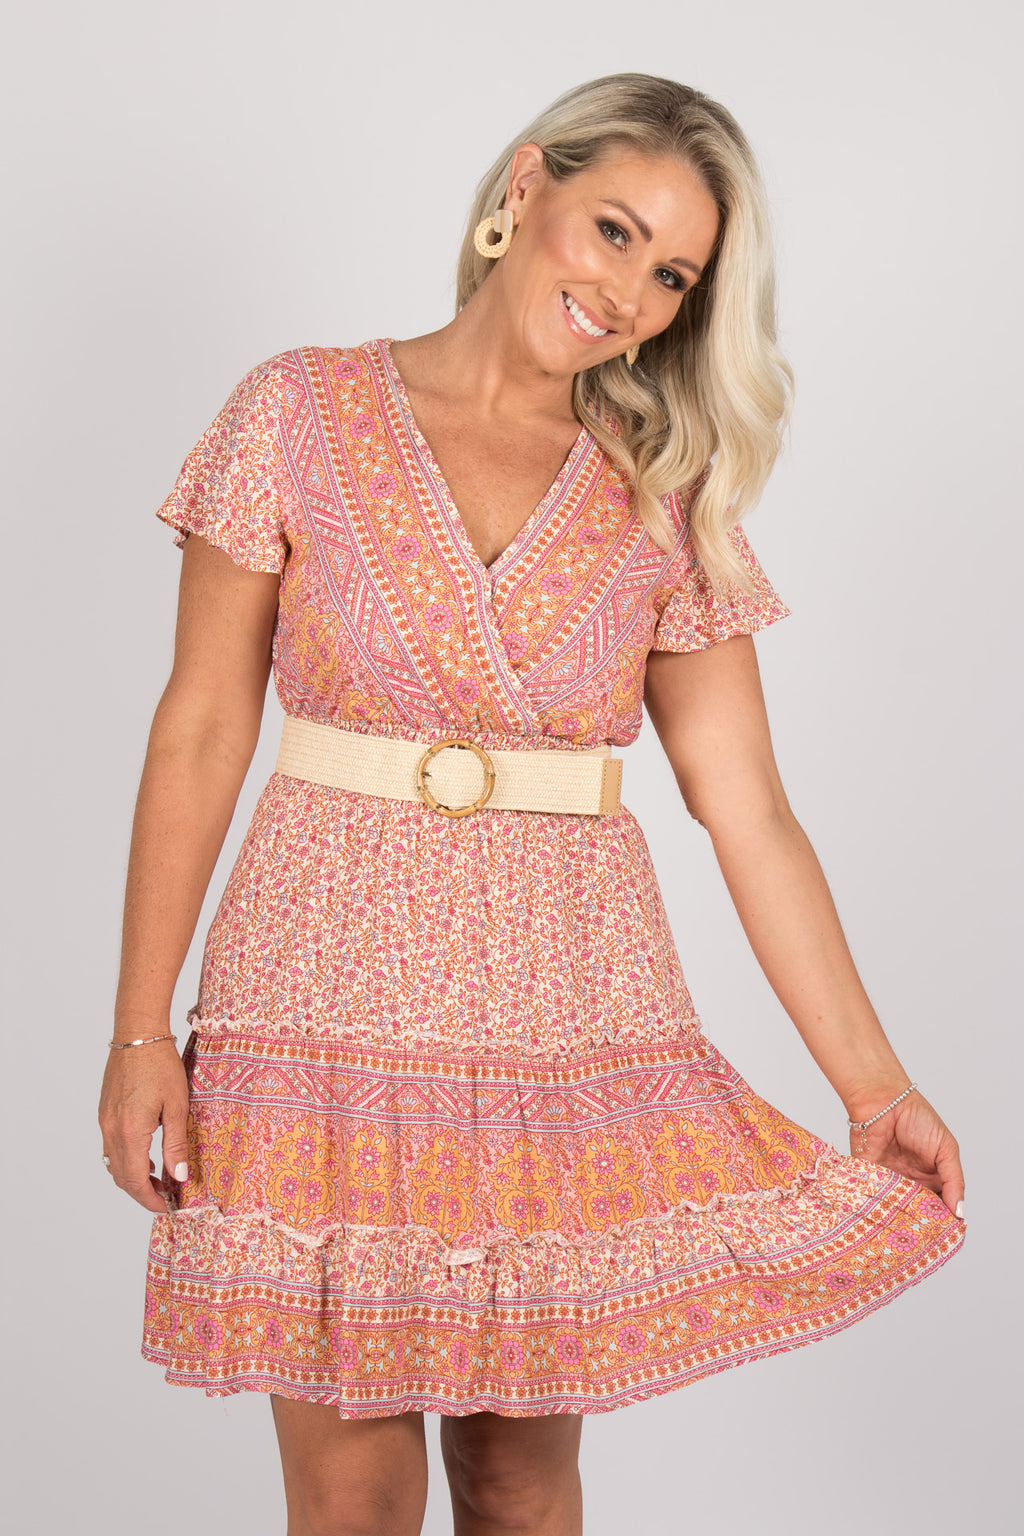 Joyful Dress in Pink